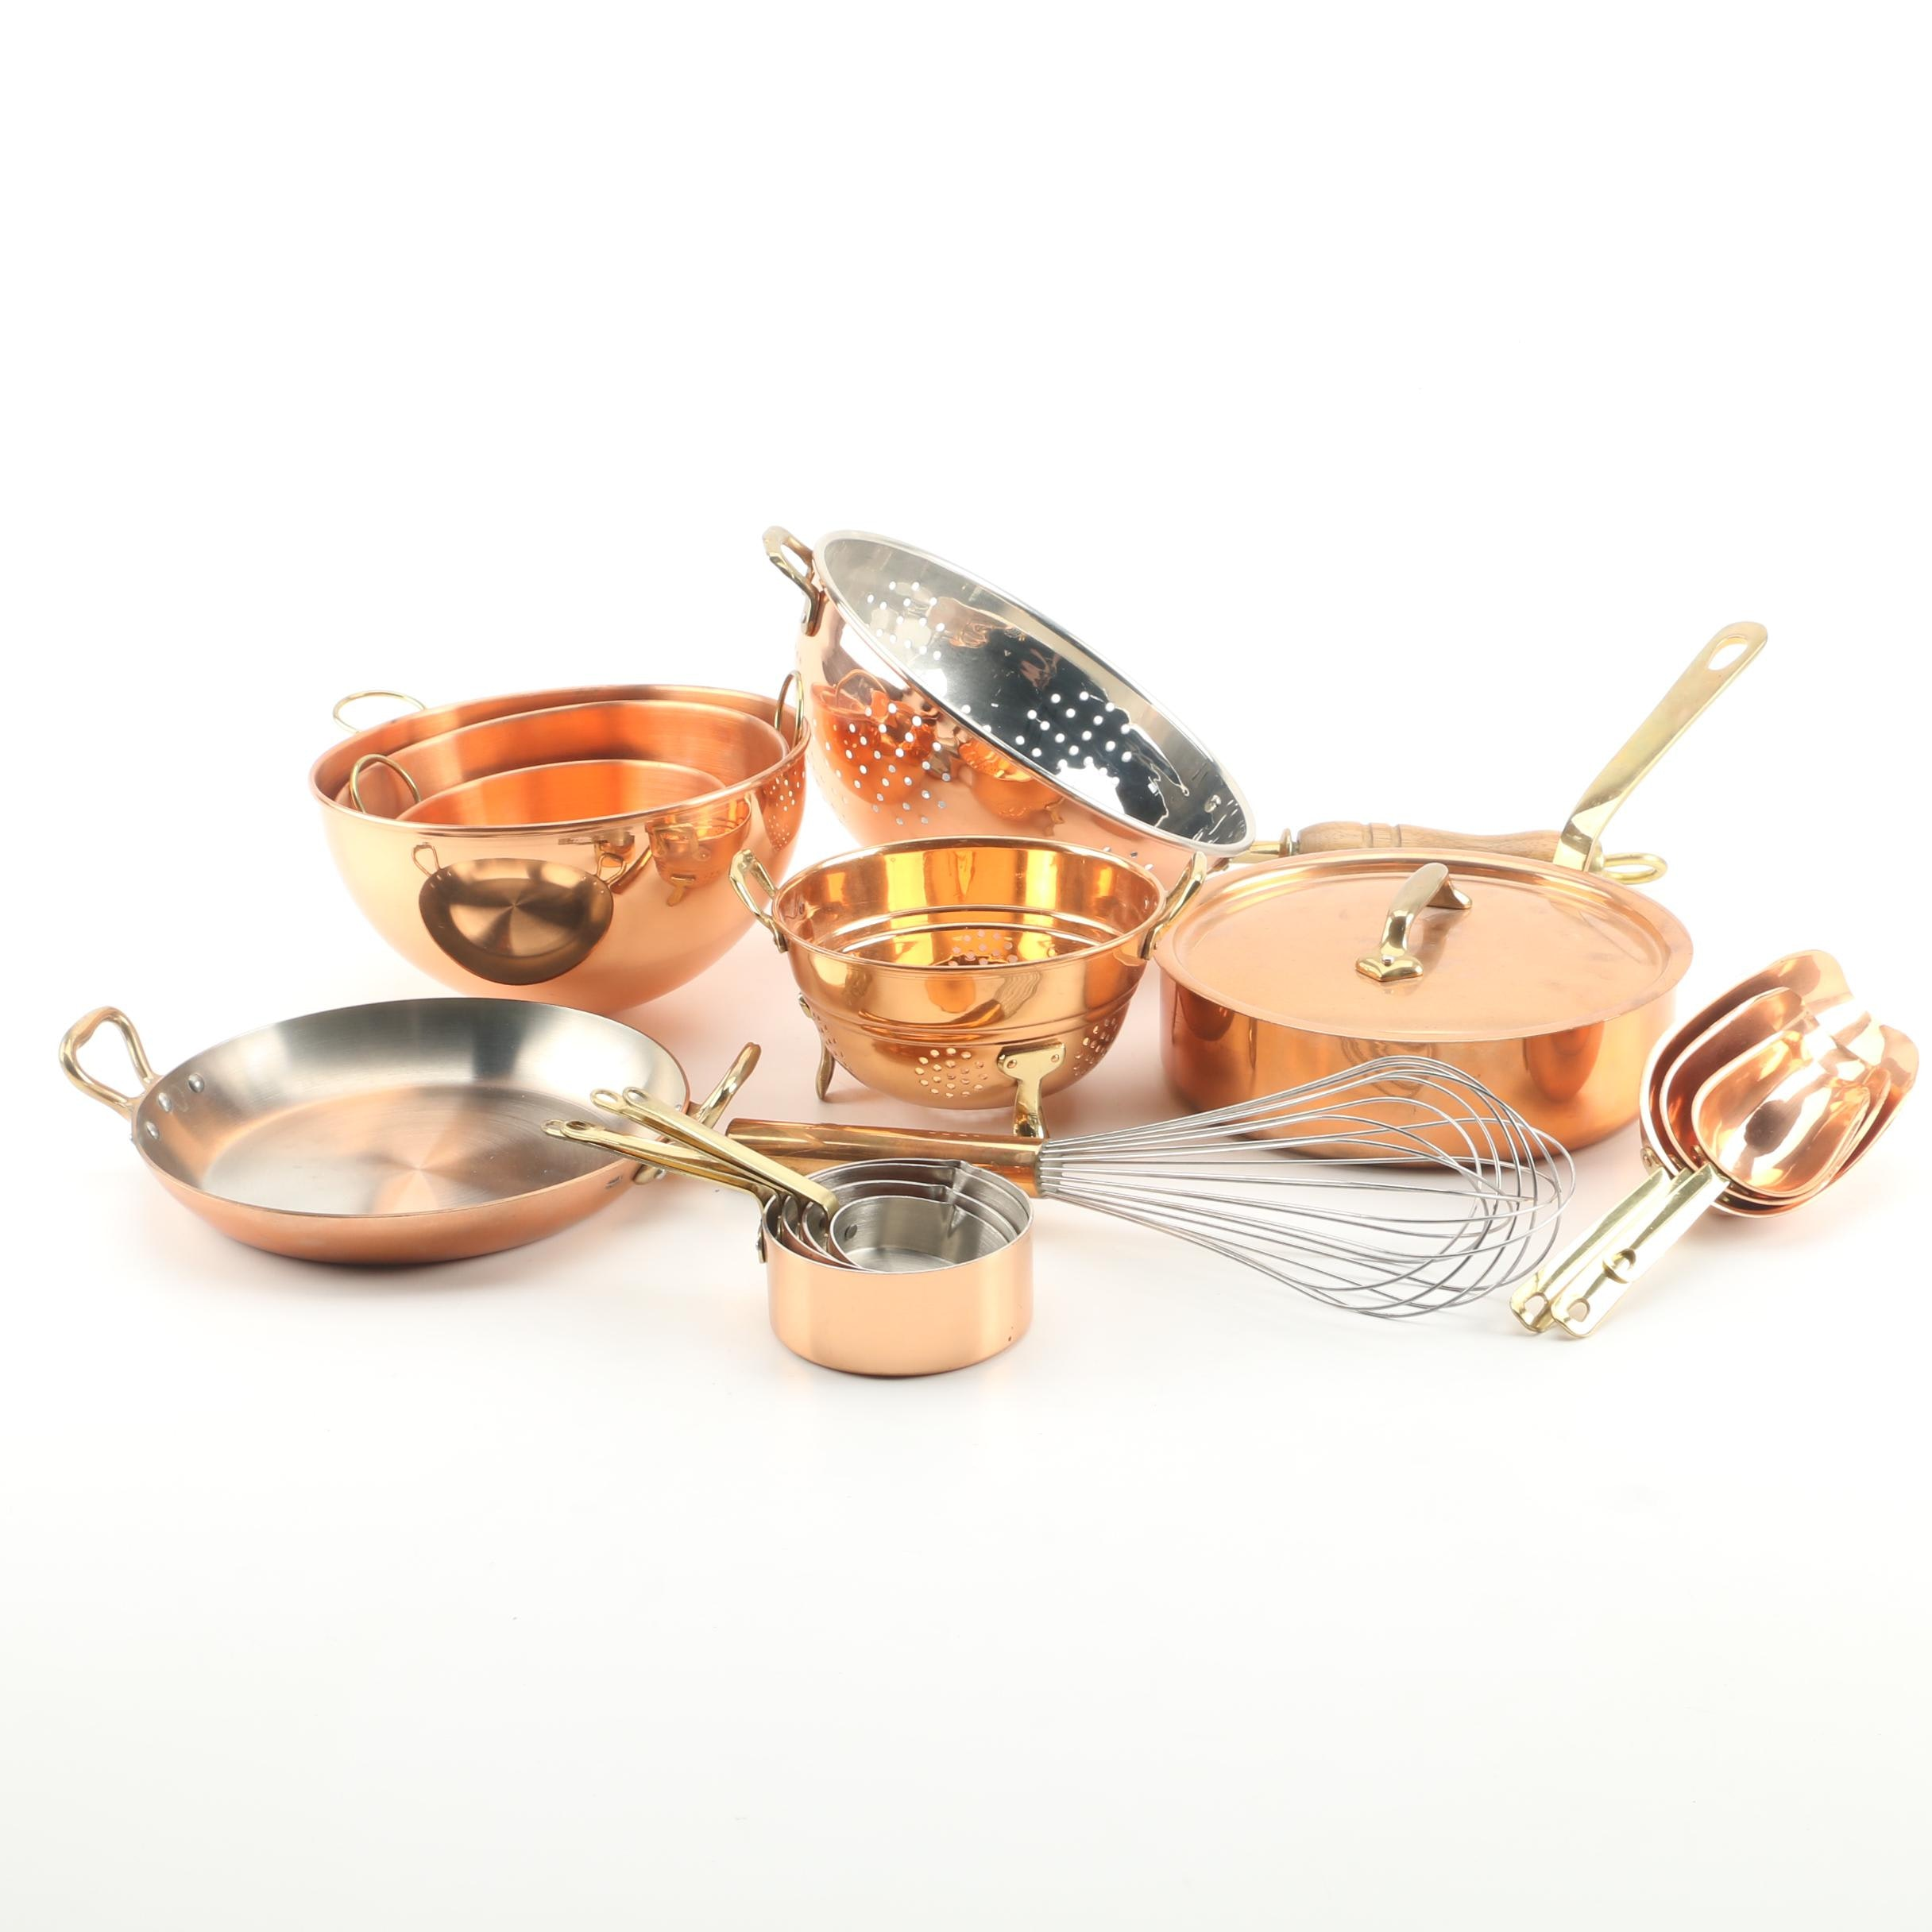 Copper Cookware and Kitchen Utensils